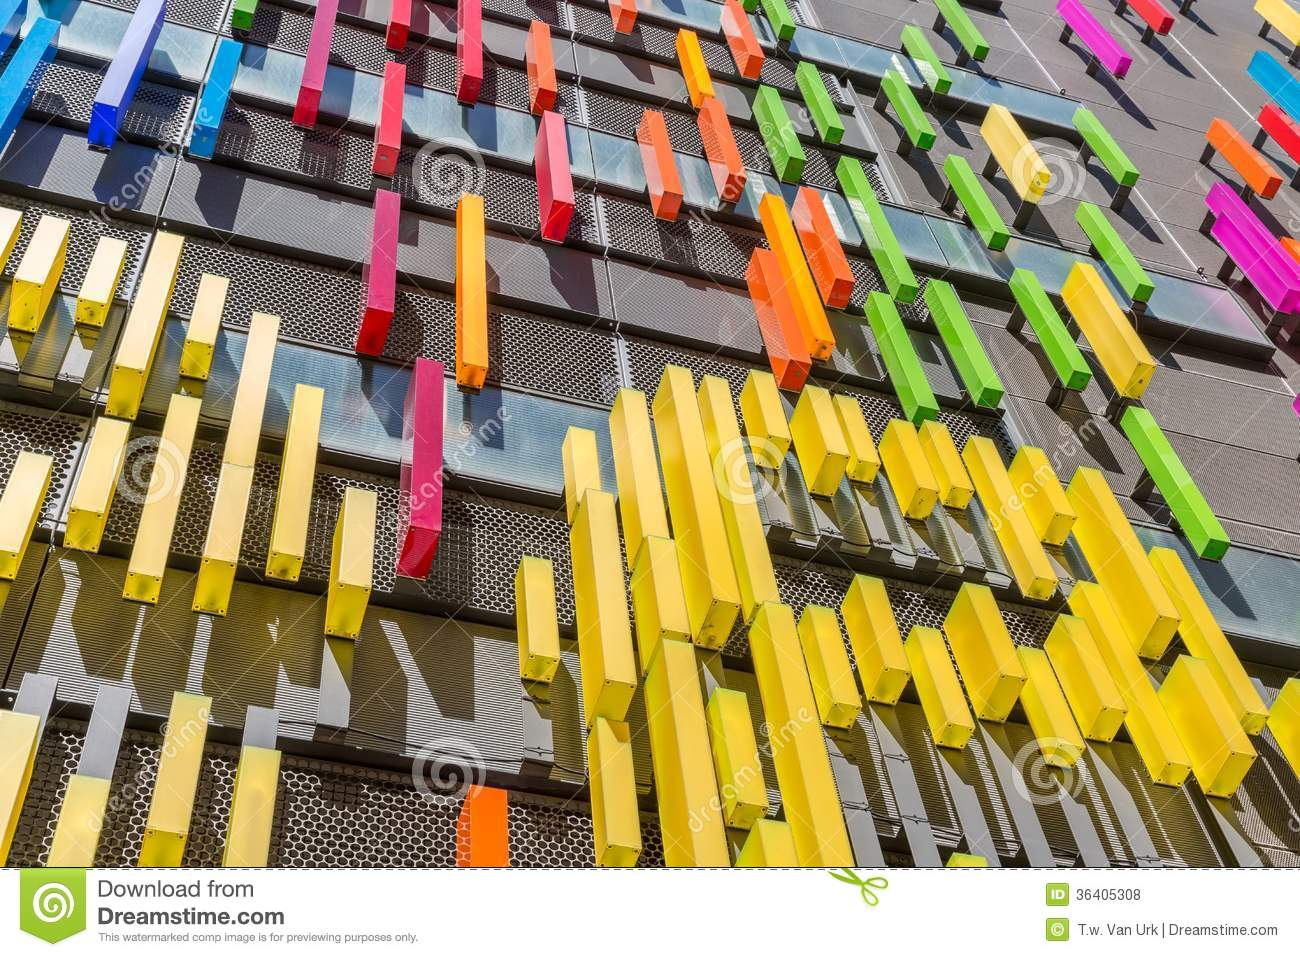 Royalty Free Stock Photos Building Facade Modern Art Colorful Image36405308 together with Luxury Florida Beach House Plans furthermore Domy Z Kontener C3 B3w 946646632171 together with Garage Design Infront Of House in addition Sensastional Newly Developed Victorian House With Roof Terrace. on small modern house architecture design